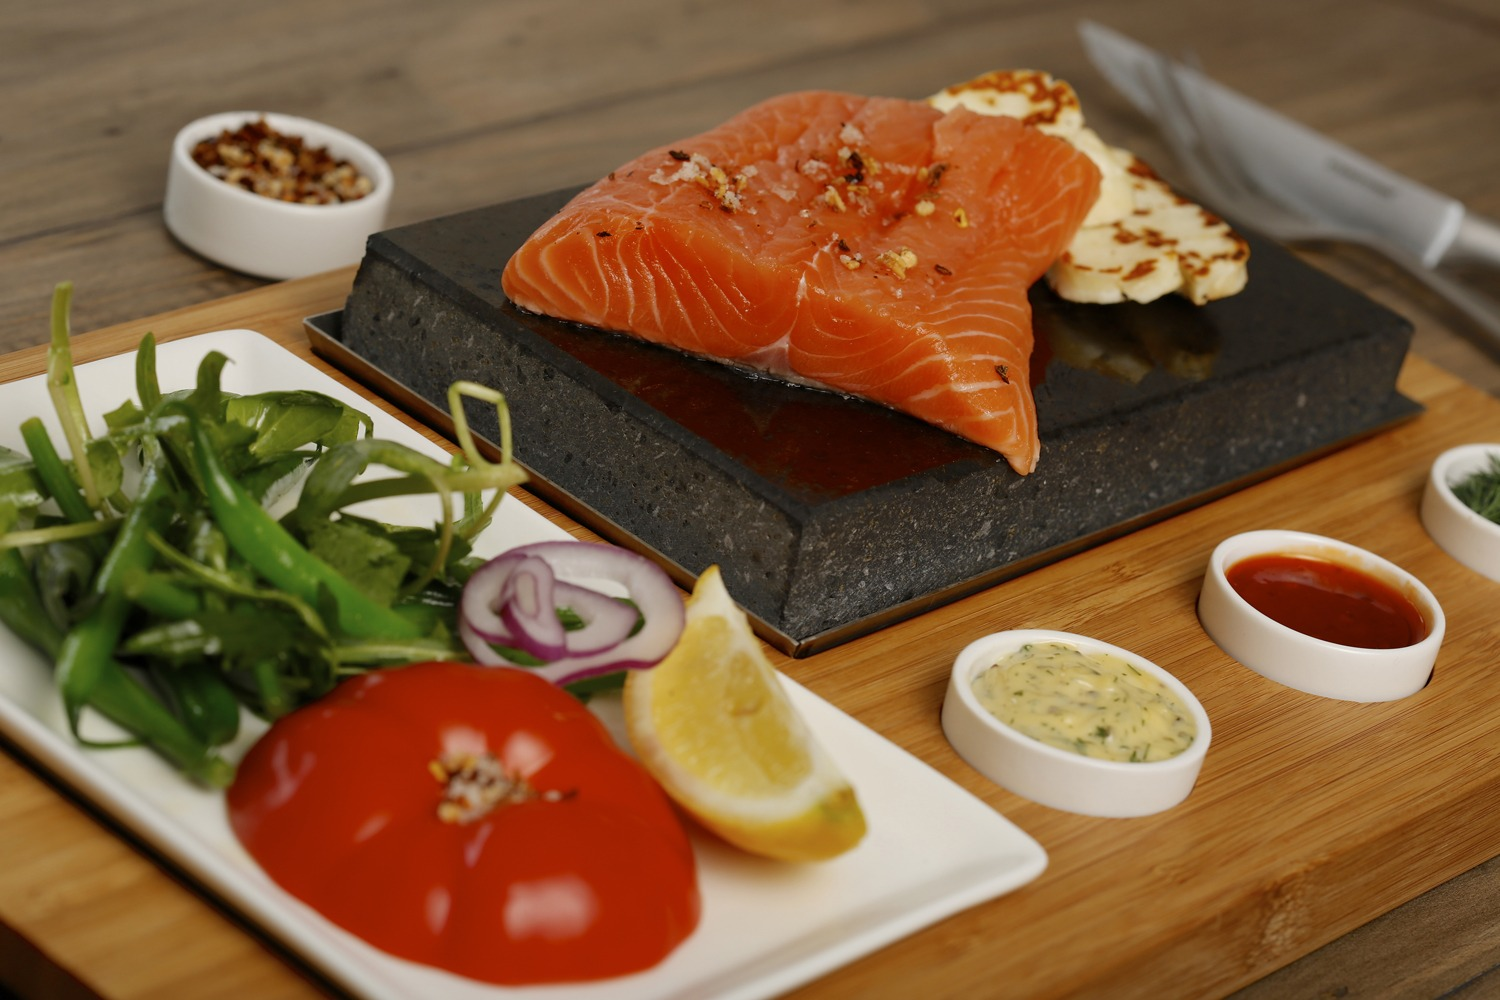 Salmon & Haloumi Cooked on the Stone. Featuring SteakStones Steak Set - the best Hot Stone Cooking Products Guaranteed